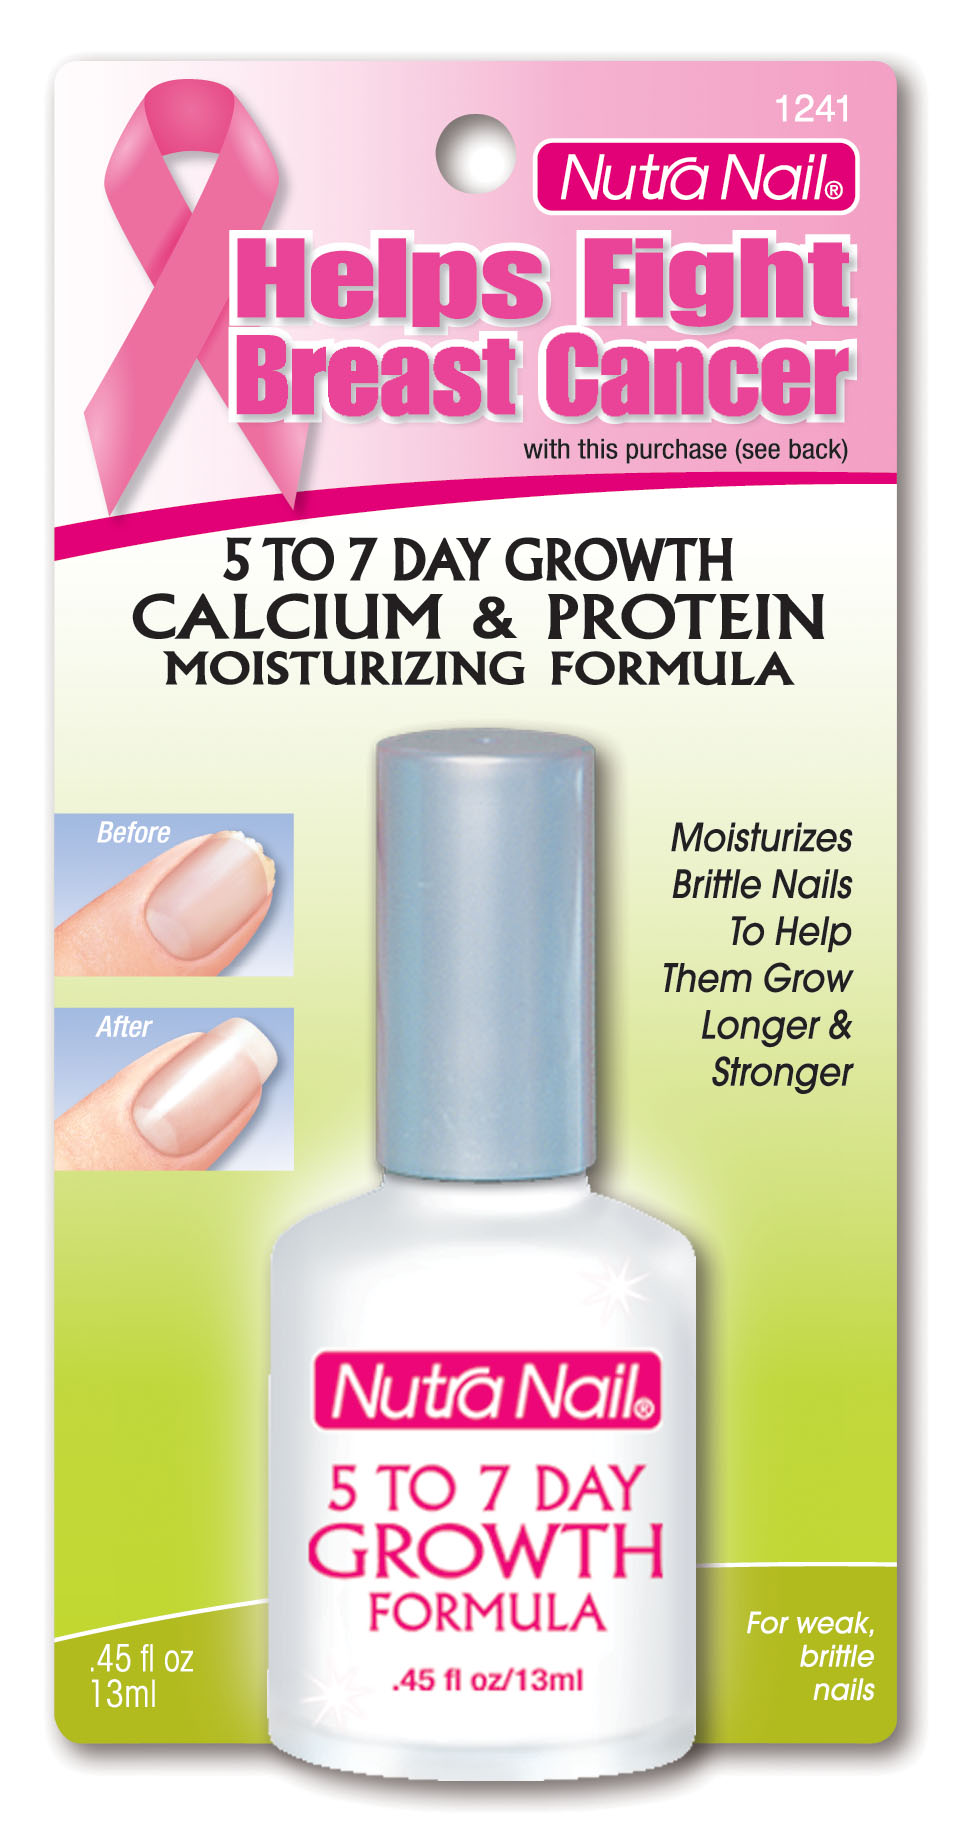 Nutra Nail – You can have it all.